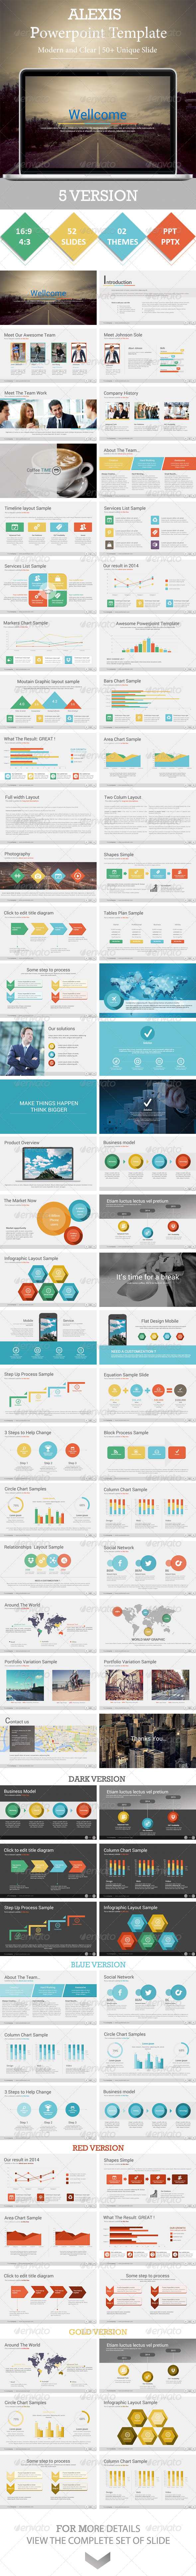 GraphicRiver ALEXIS Powerpoint Presentation Template 8679134